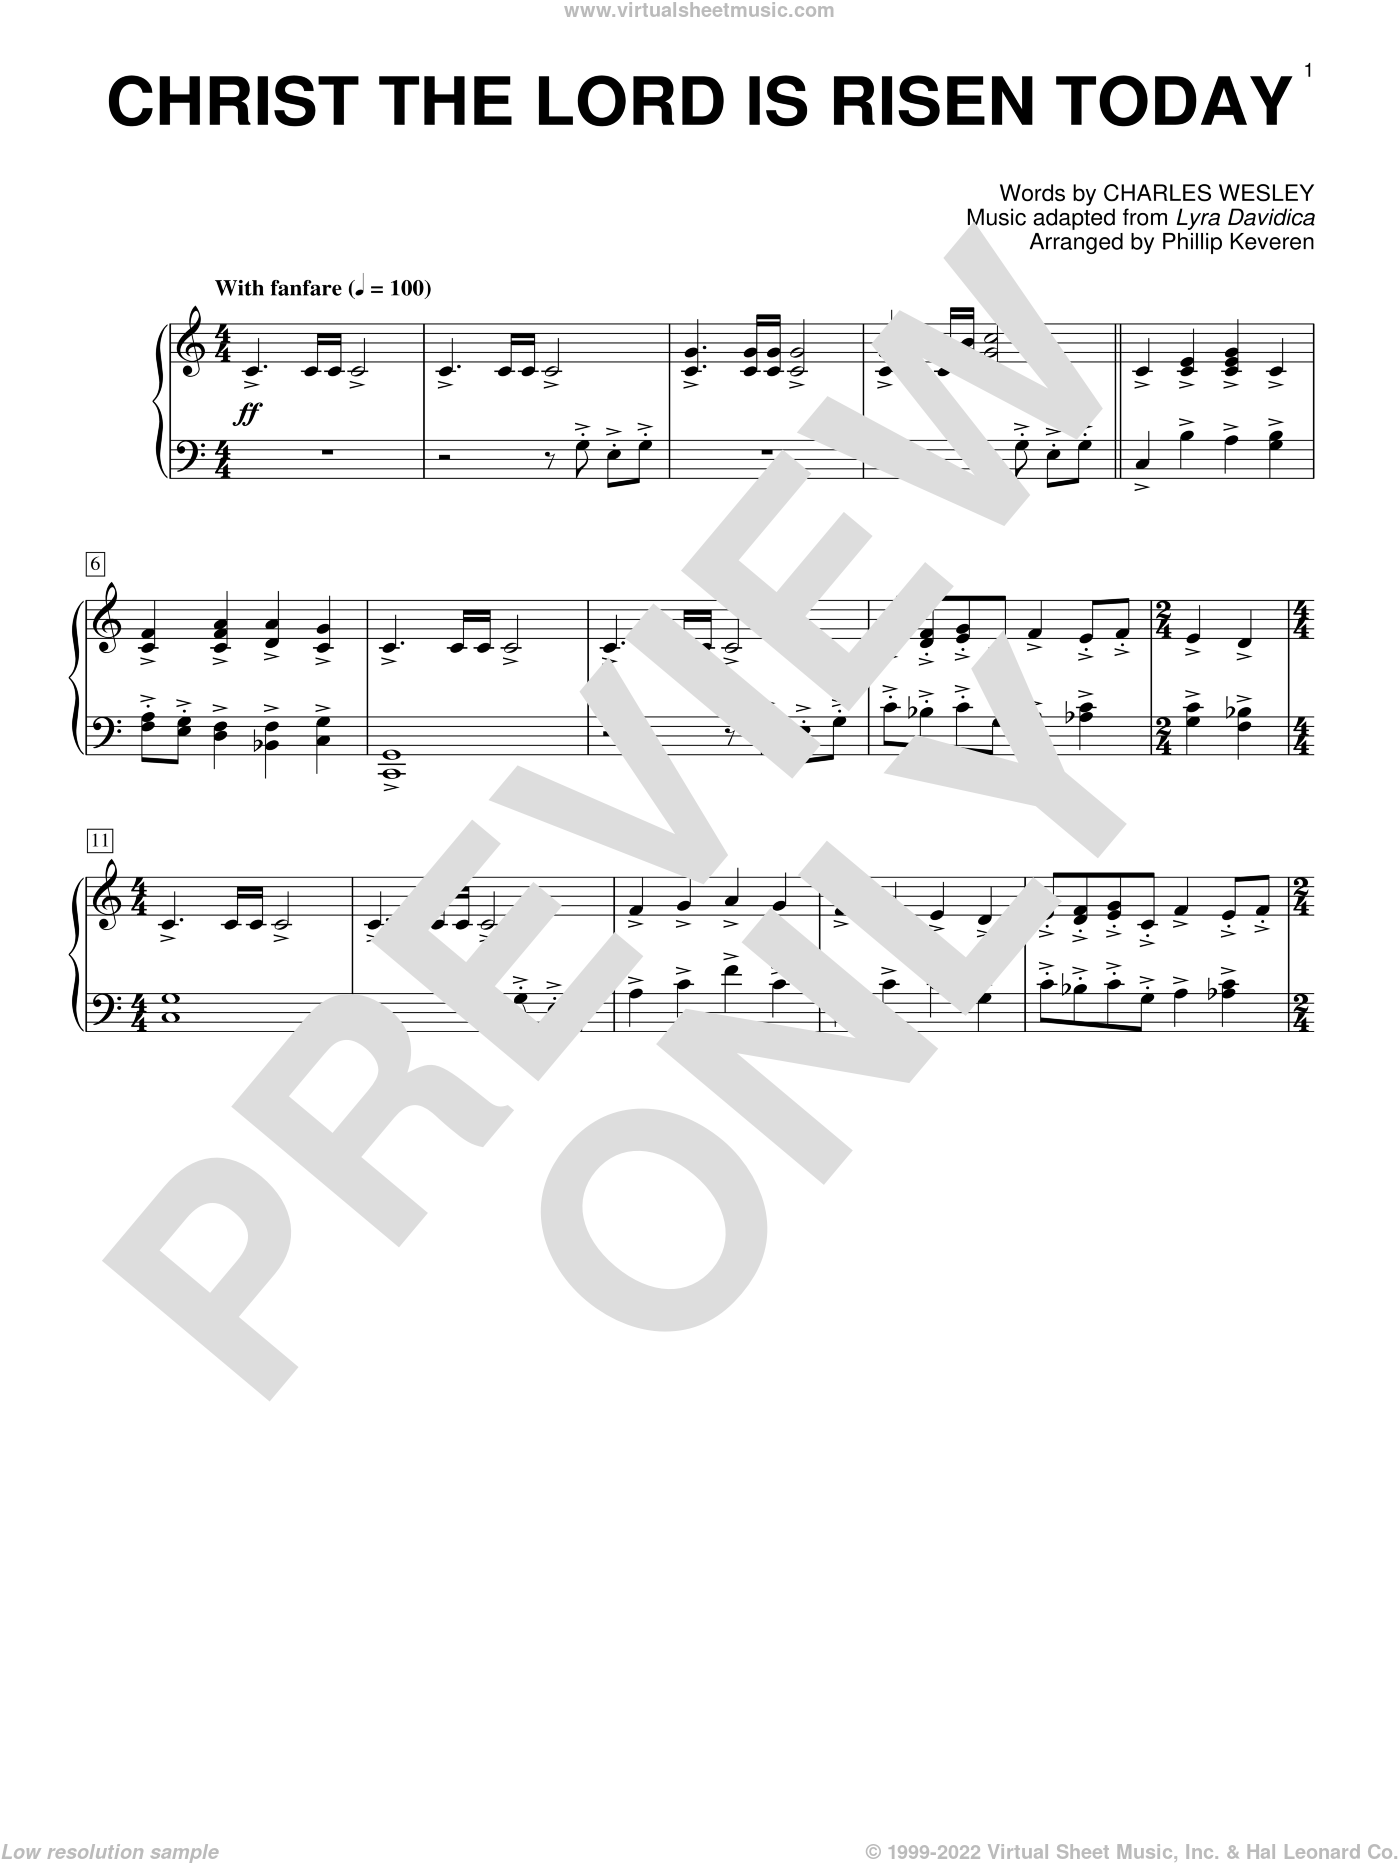 Christ The Lord Is Risen Today sheet music for piano solo by Charles Wesley, Phillip Keveren and Lyra Davidica, intermediate skill level